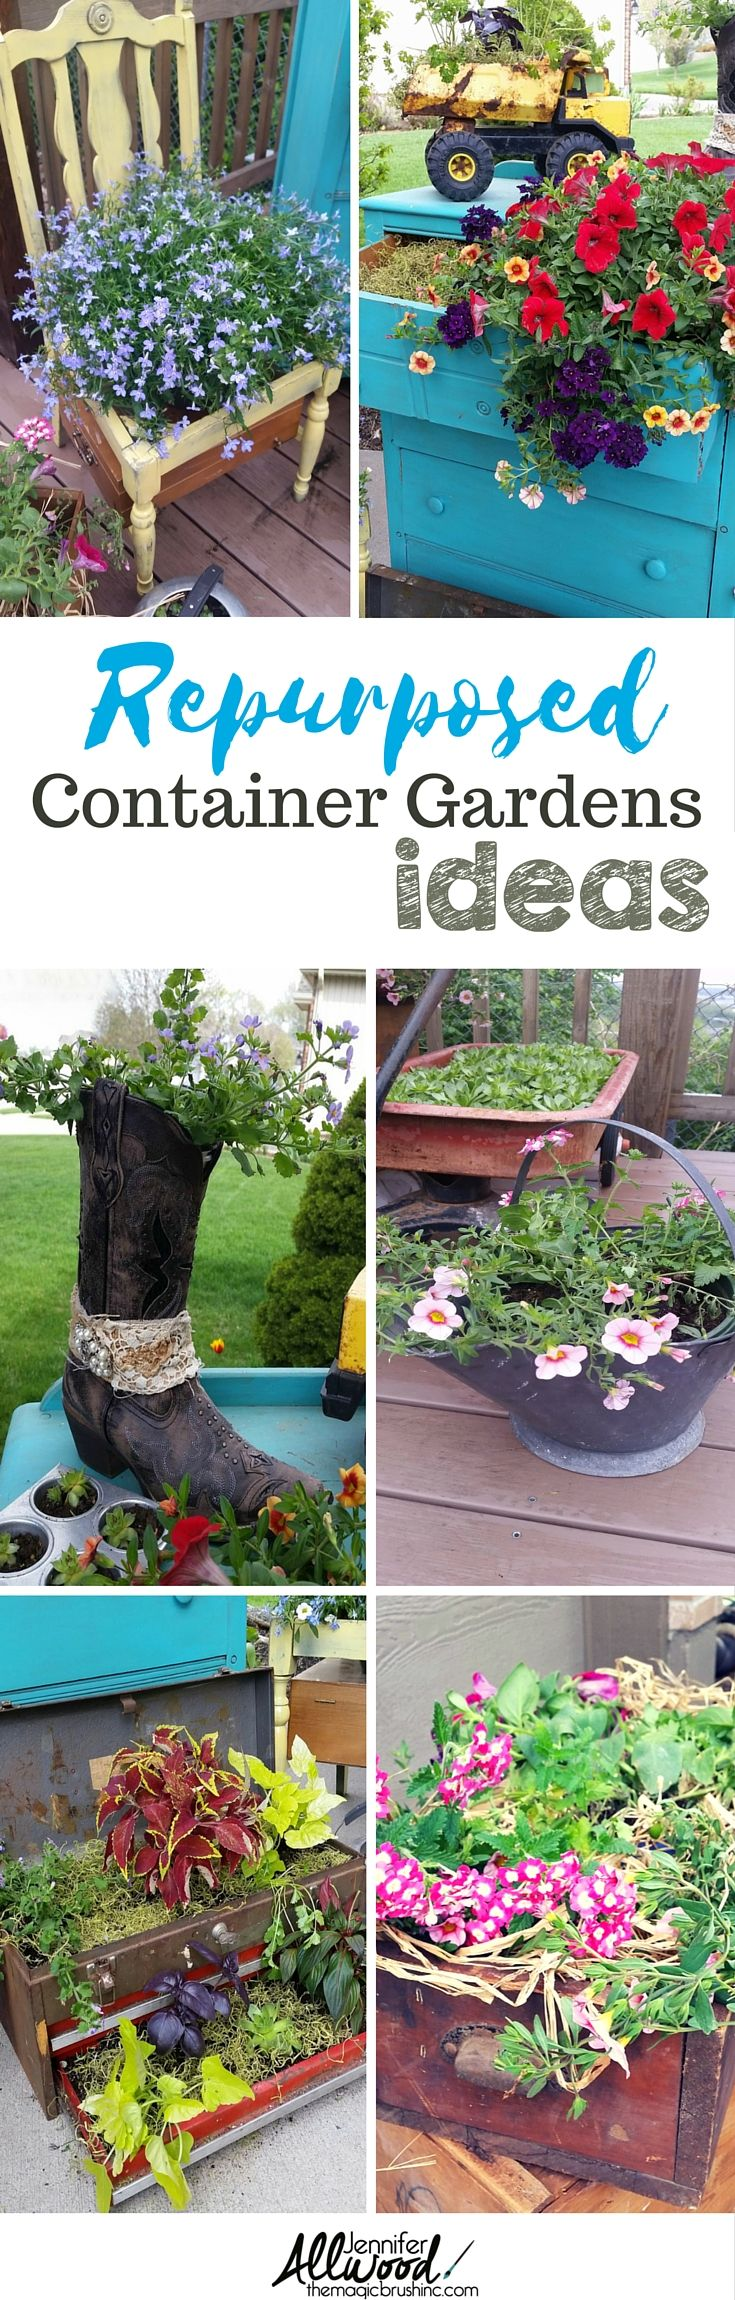 Beautiful Repurposed Container Garden Ideas. Repurpose vintage decor and other farmhouse containers into flower pots for container gardening. Makes wonderful Farmhouse Outdoor decor. More design tips from theMagicBrushinc.com